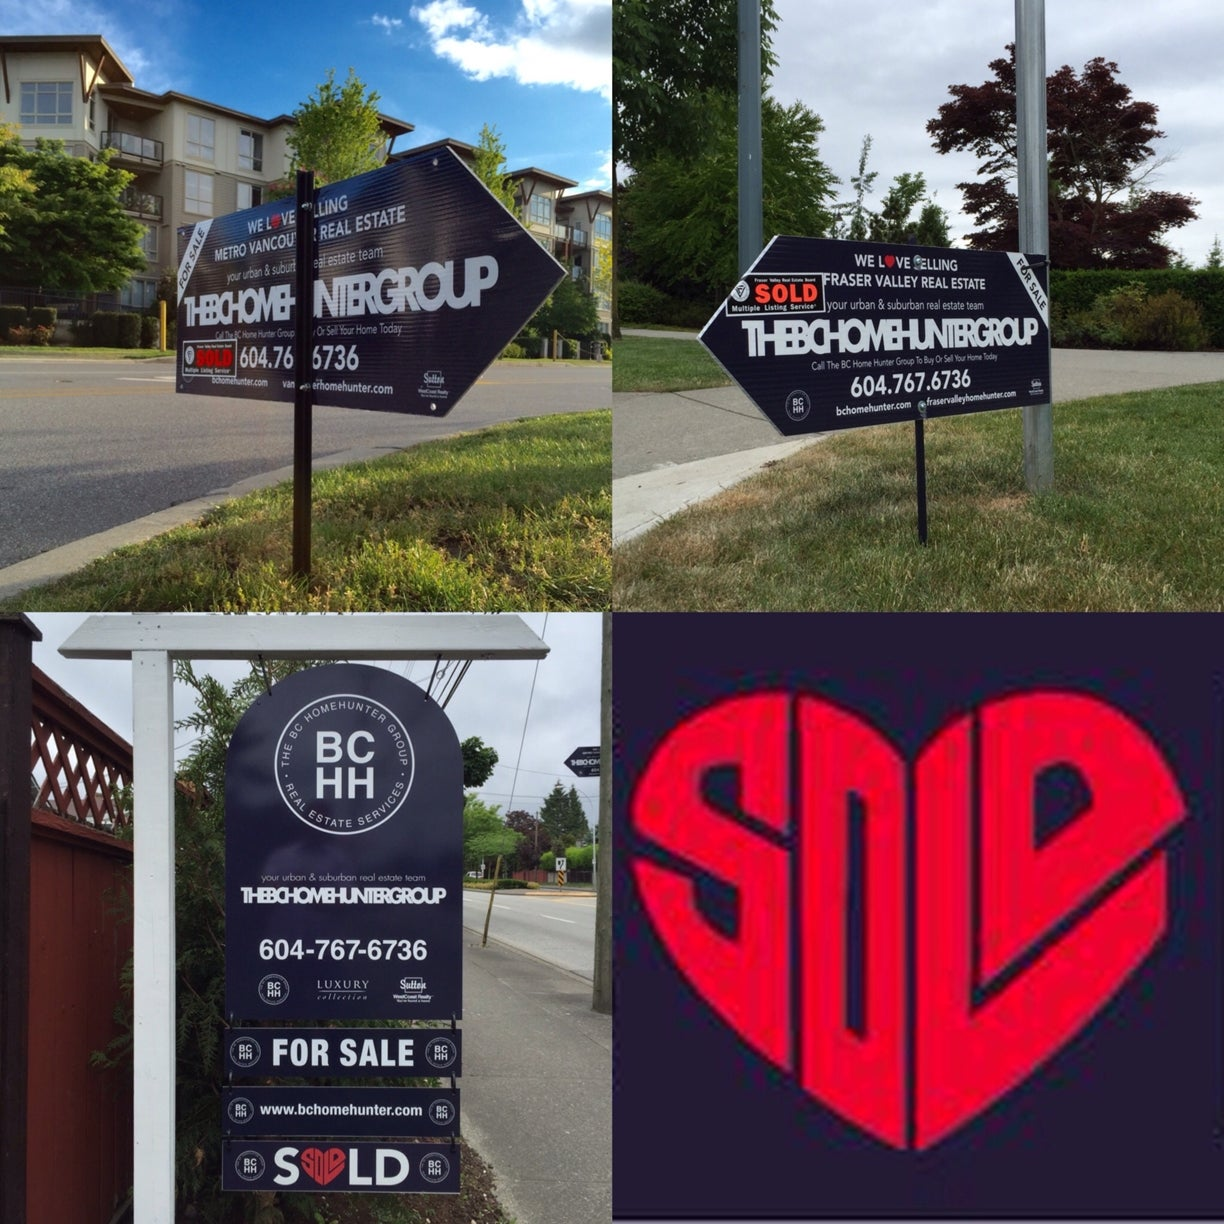 SOLD - THE BC HOME HUNTER GROUP - @BCHOMEHUNTER  THE BC HOME HUNTER GROUP METRO